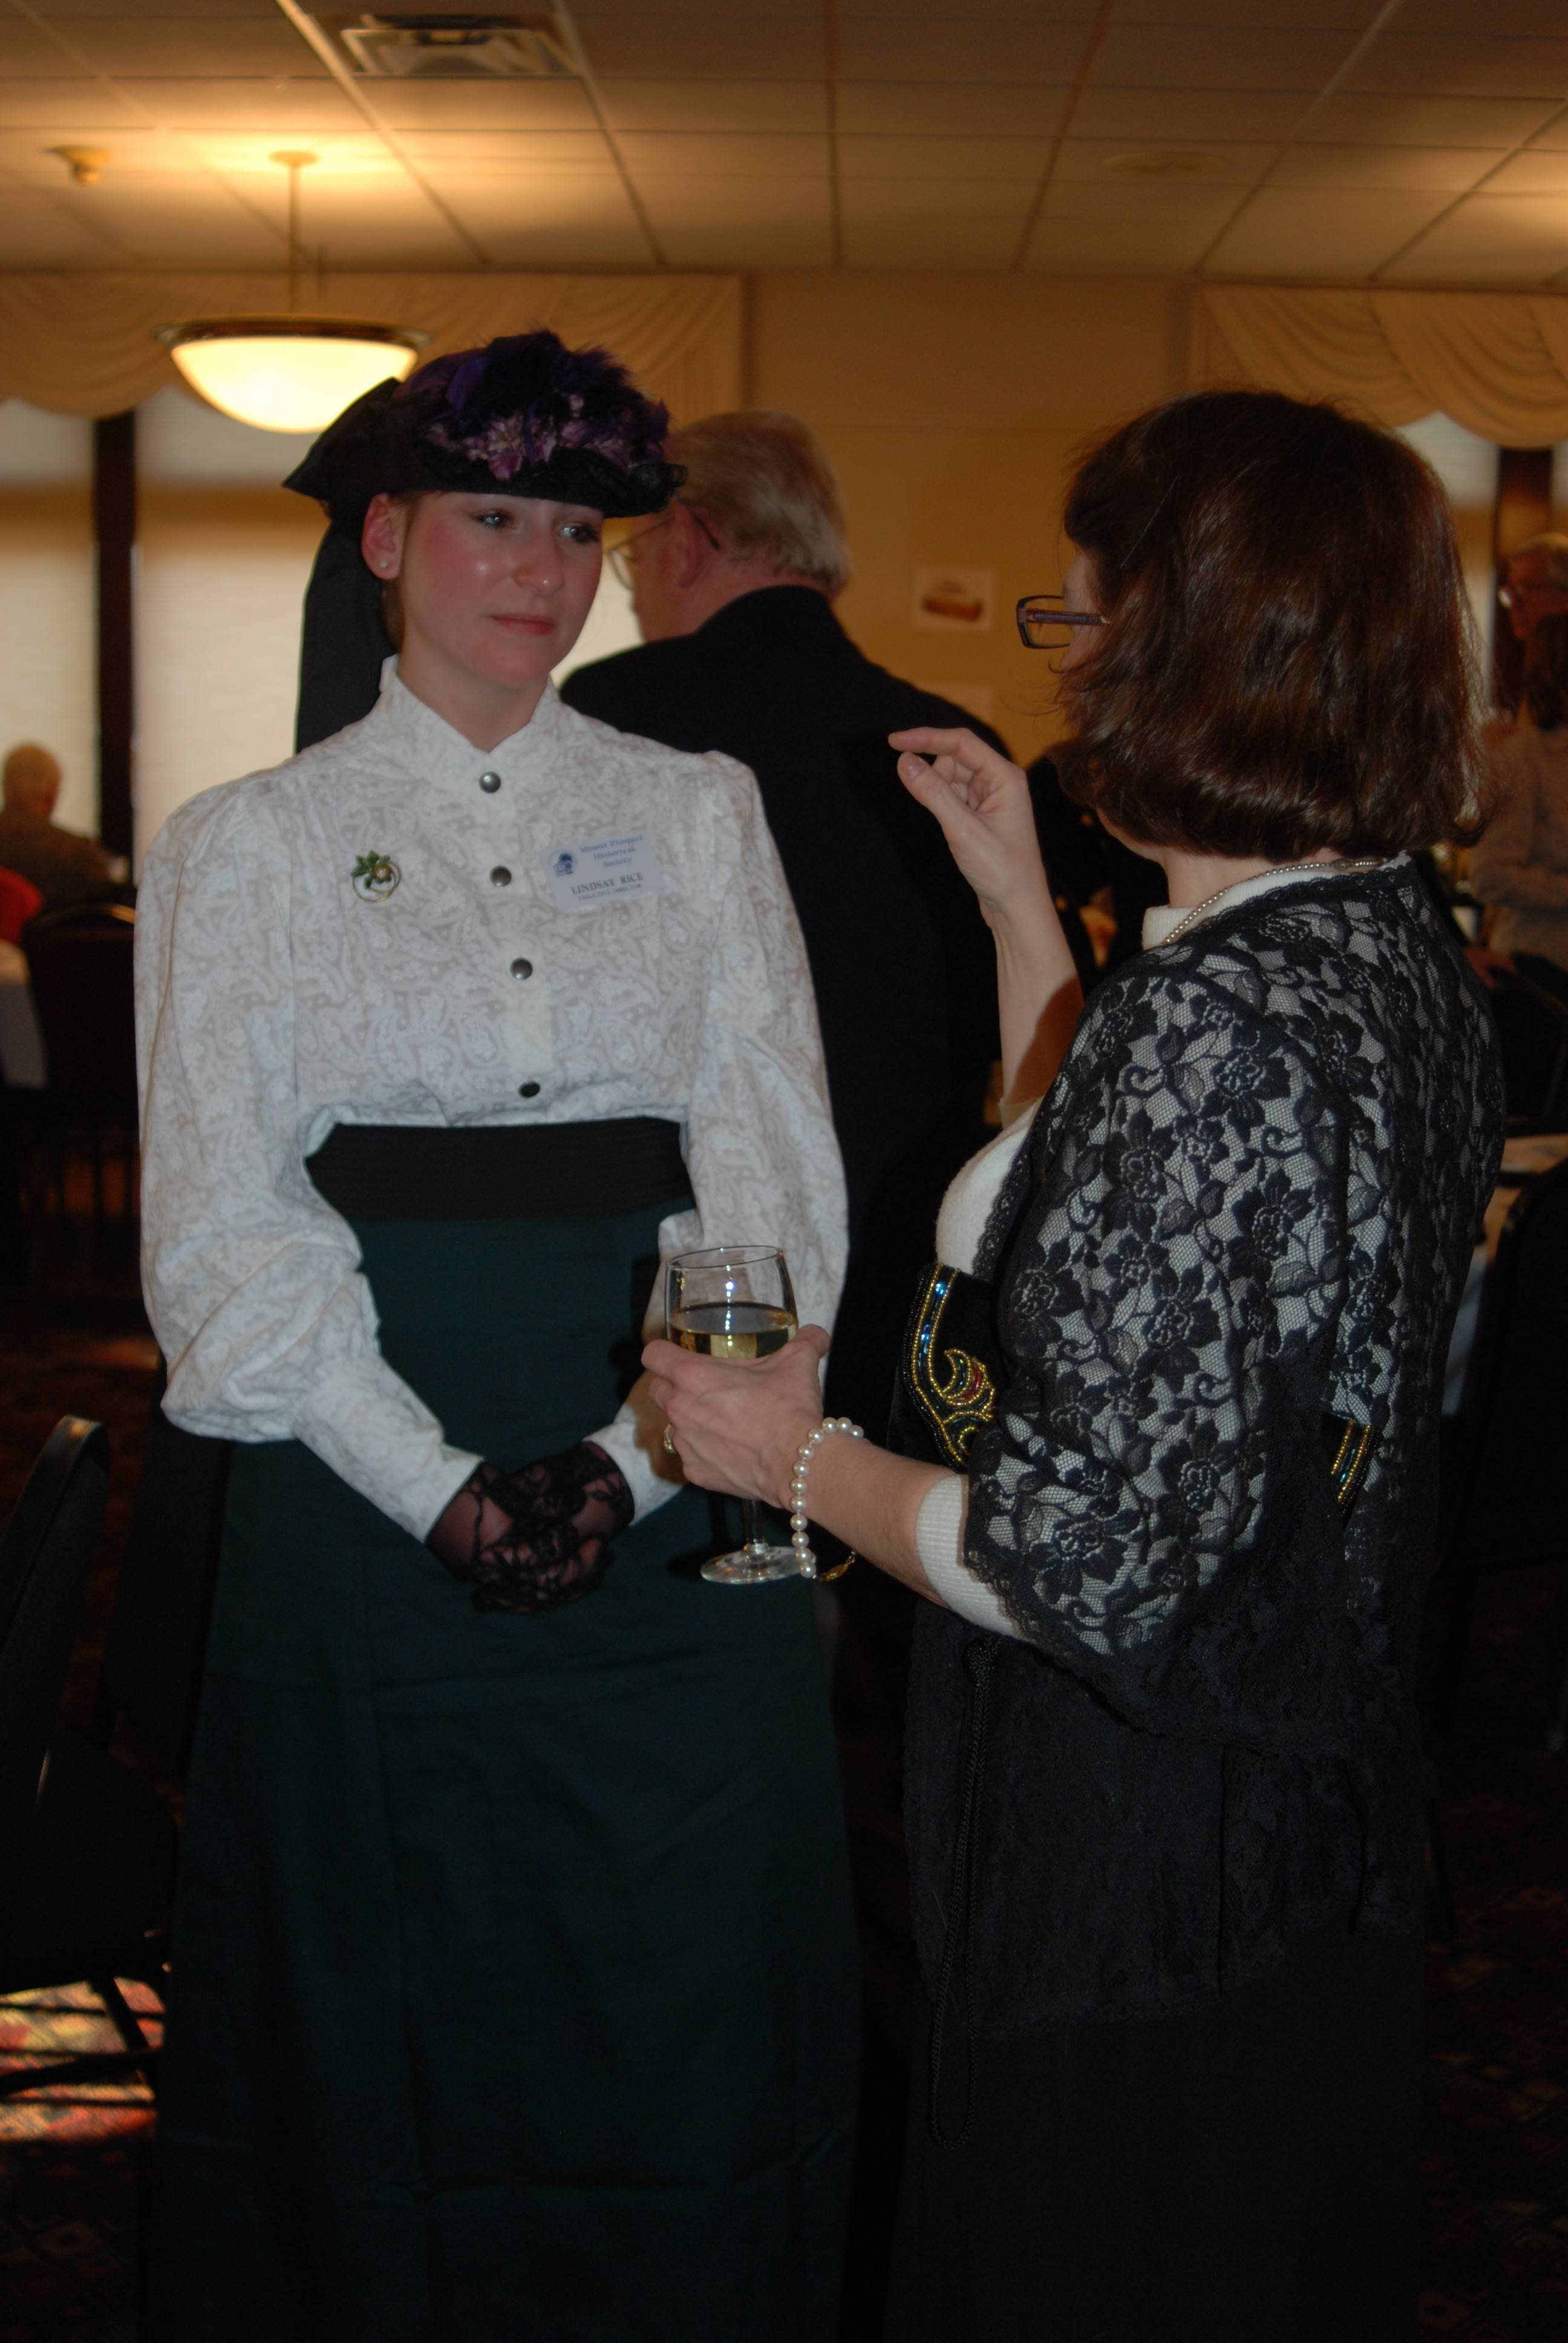 Mount Prospect Historical Society Executive Director Lindsay Rice, left, talks about costumes with Katie Kelly of Arlington Heights at a dinner celebrating the 120th anniversary of the World's Columbian Exposition in Chicago.